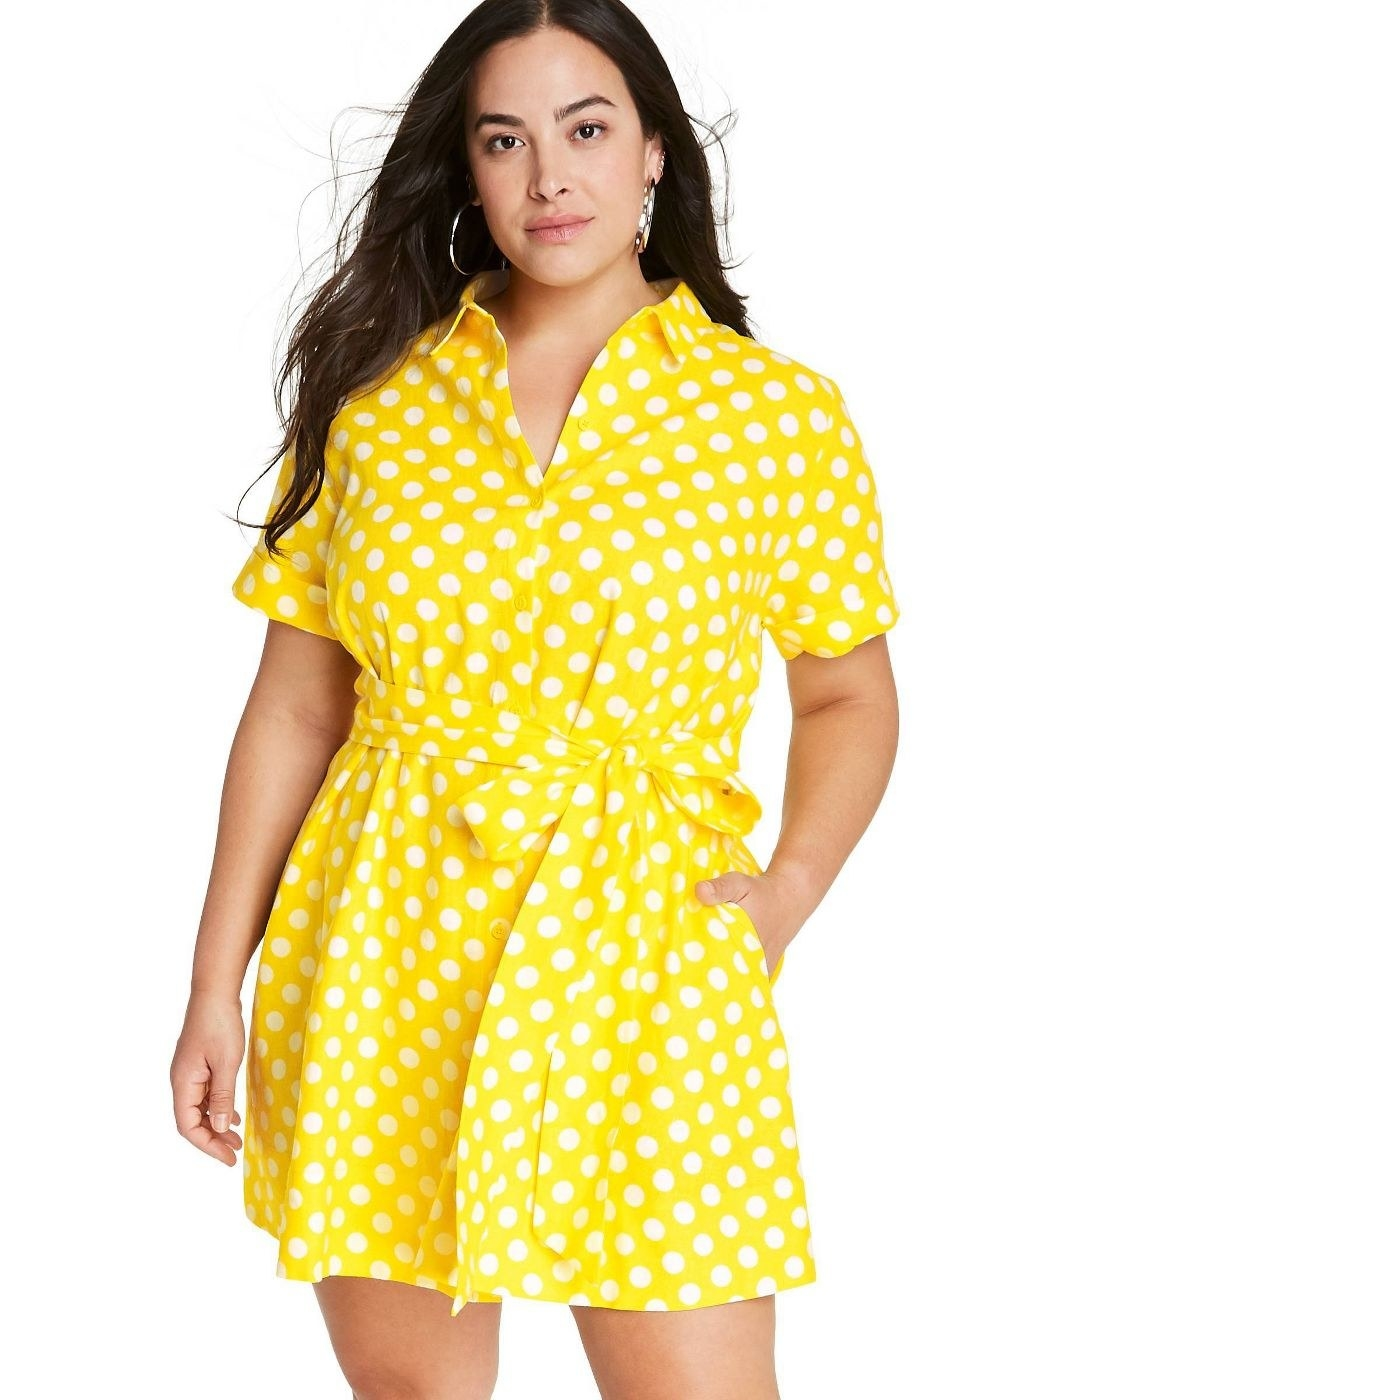 A model in a yellow dress with white polka dots and a tie string waist